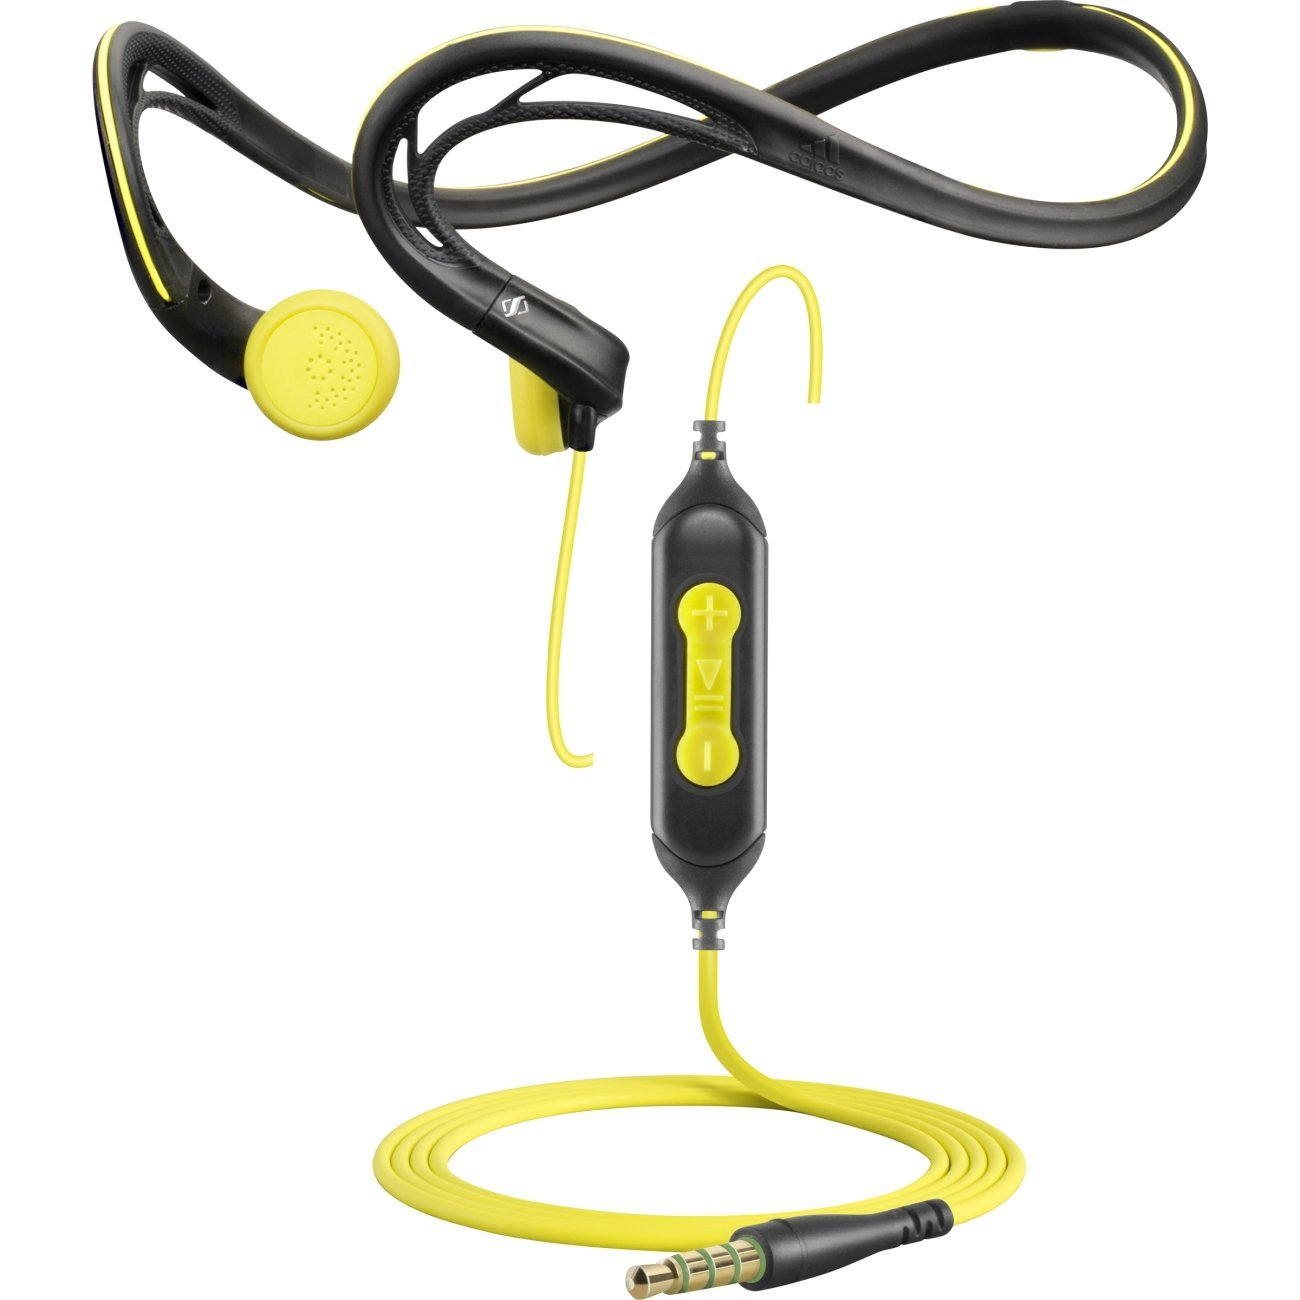 PMX 680i Rugged Neckband Headset with Integrated Remote and Mic